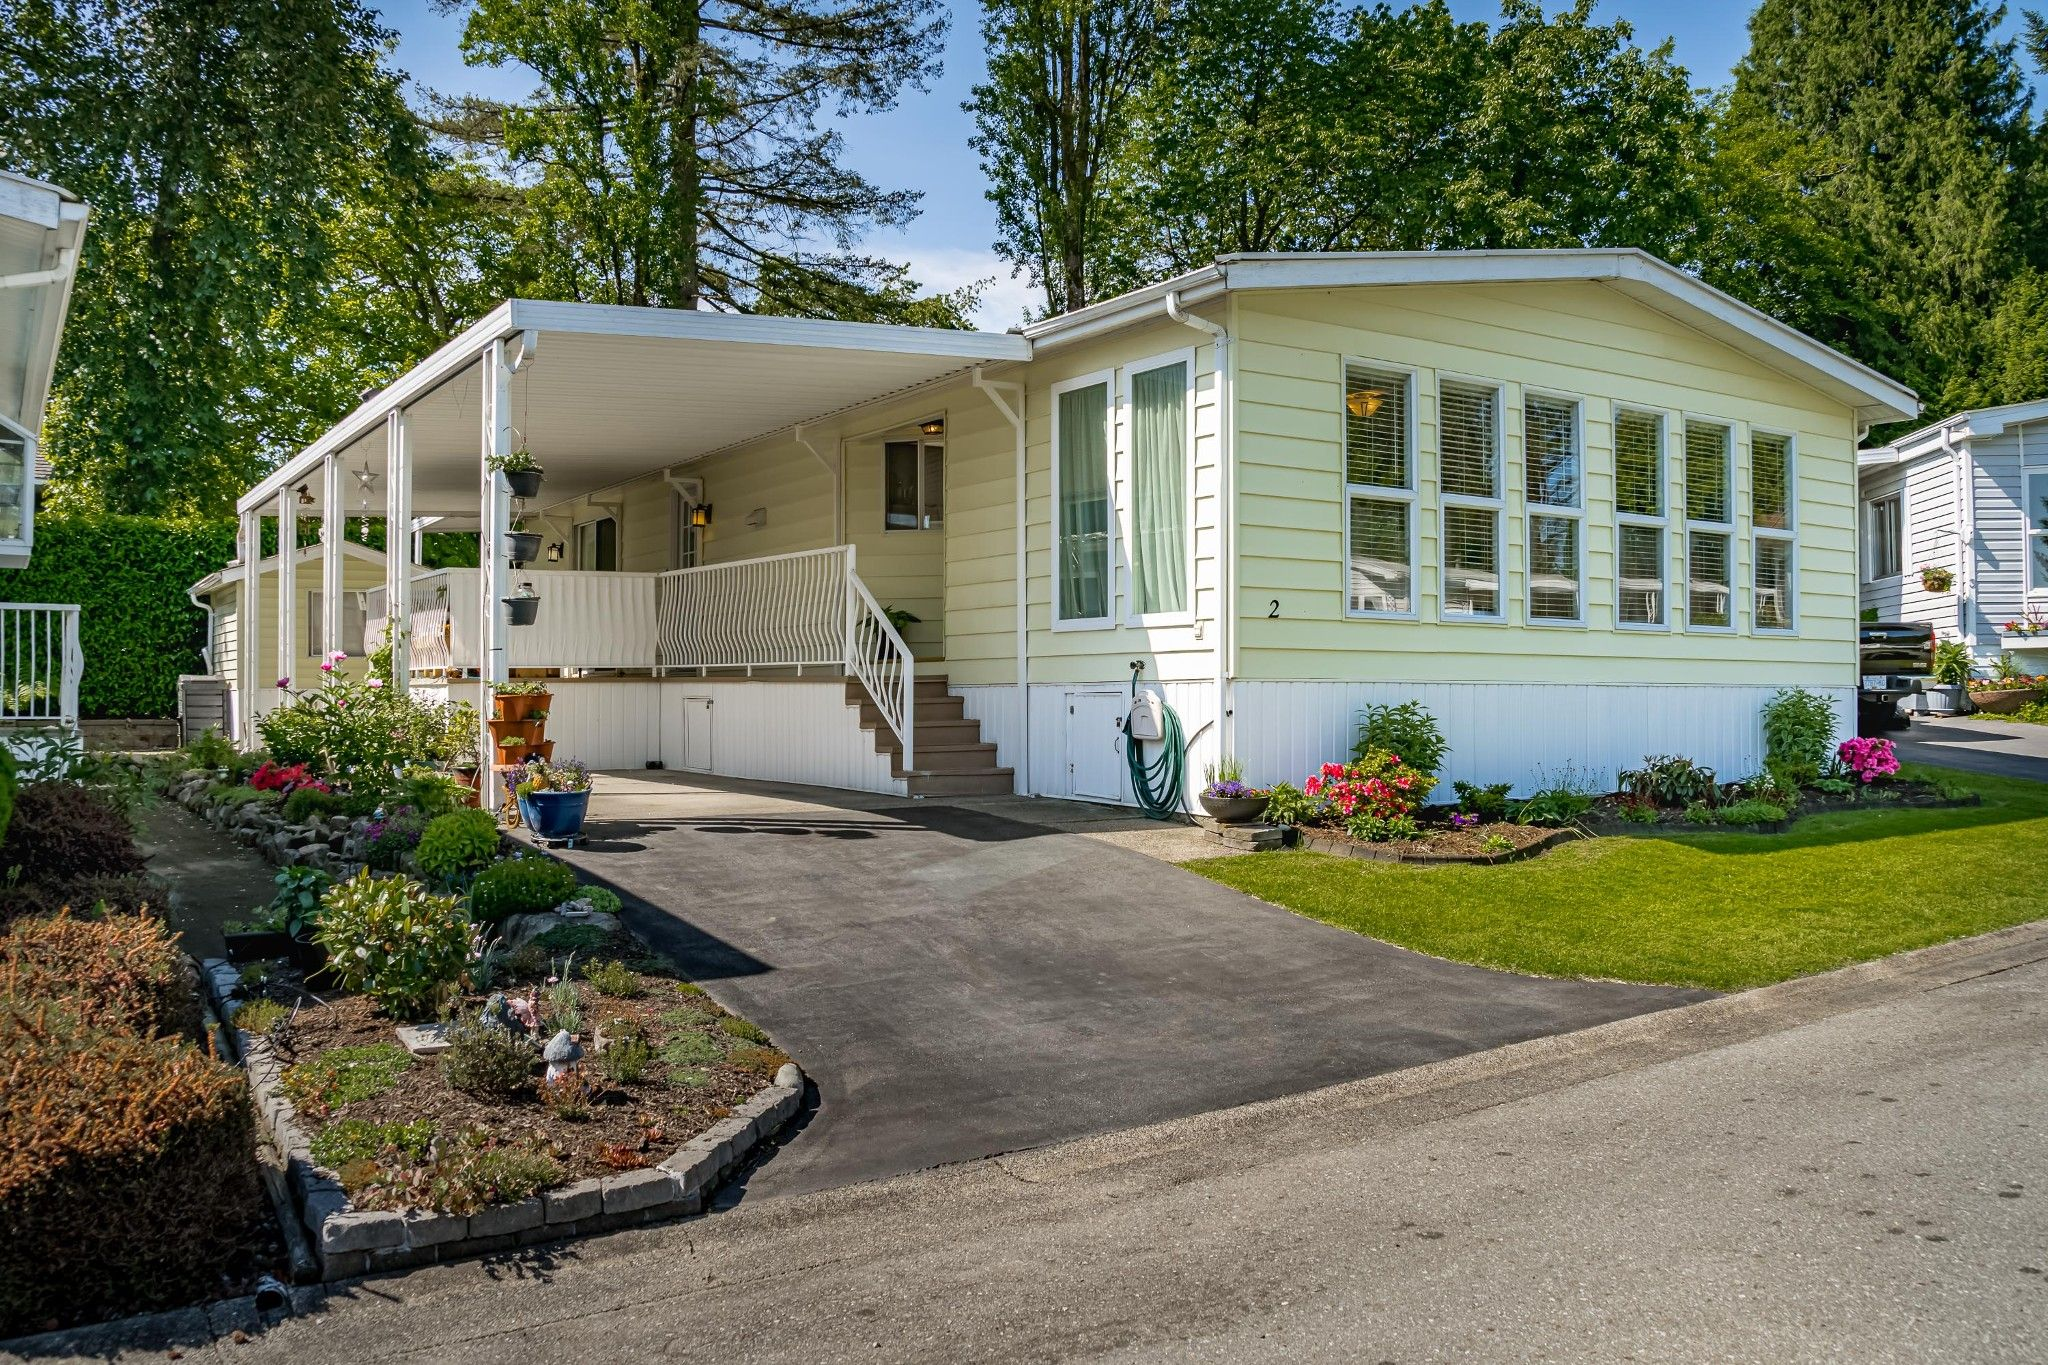 """Main Photo: 2 13507 81 Avenue in Surrey: Queen Mary Park Surrey Manufactured Home for sale in """"Park Boulevard Estates"""" : MLS®# R2460822"""